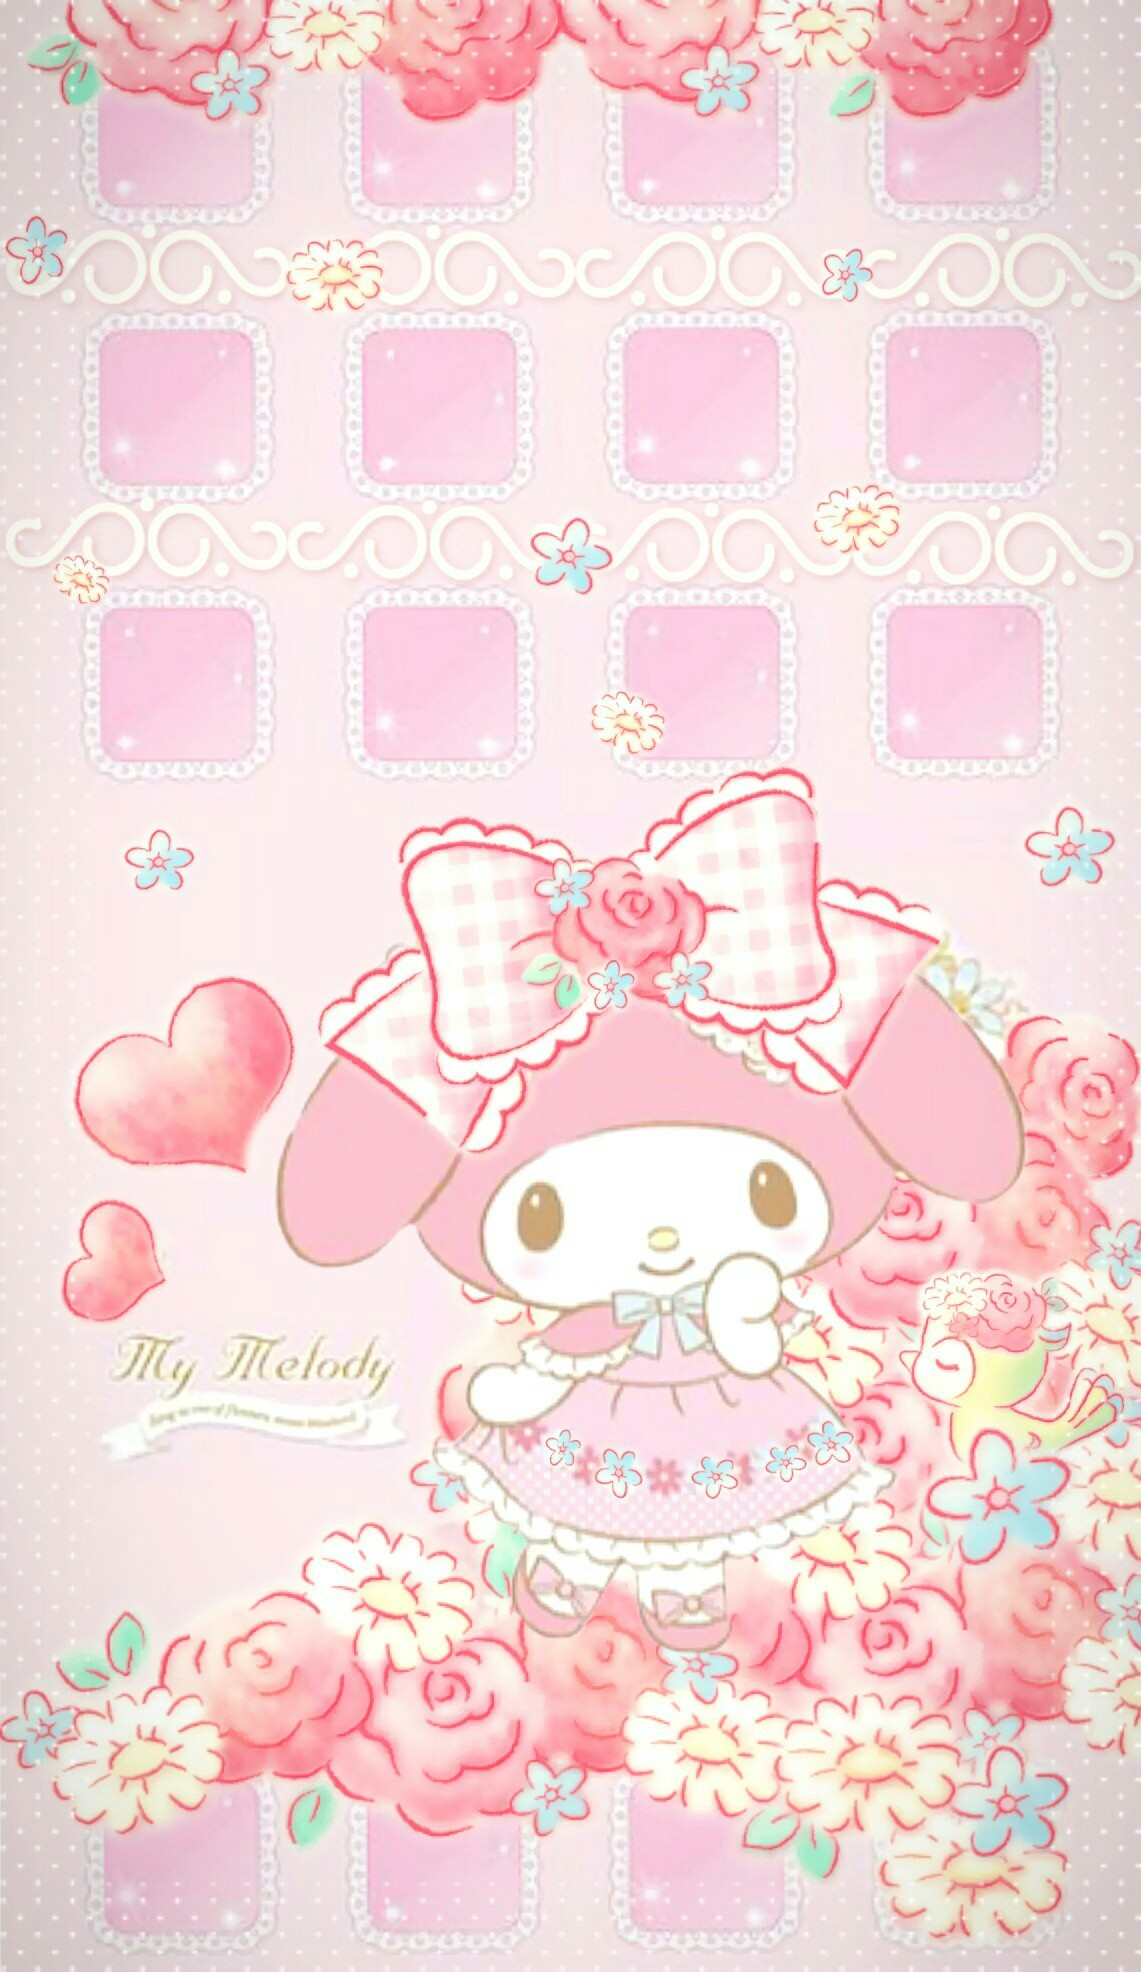 Cute Kitty Wallpapers Free My Melody Wallpaper For Iphone 76 Images